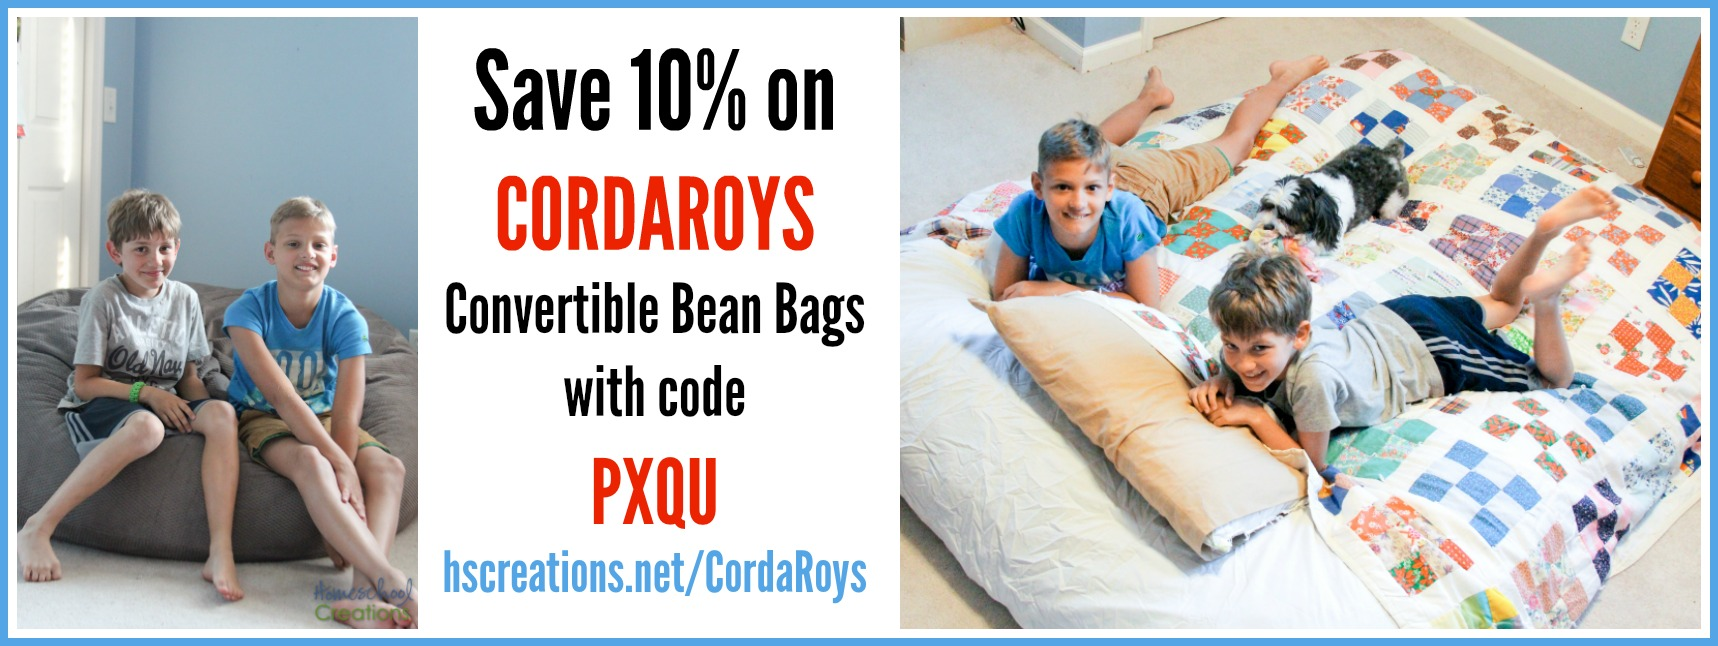 CordaRoys offers promo codes often. On average, CordaRoys offers 2 codes or coupons per month. Check this page often, or follow CordaRoys (hit the follow button up top) to keep updated on their latest discount codes. Check for CordaRoys' promo code exclusions. CordaRoys promo codes sometimes have exceptions on certain categories or brands.5/5(6).